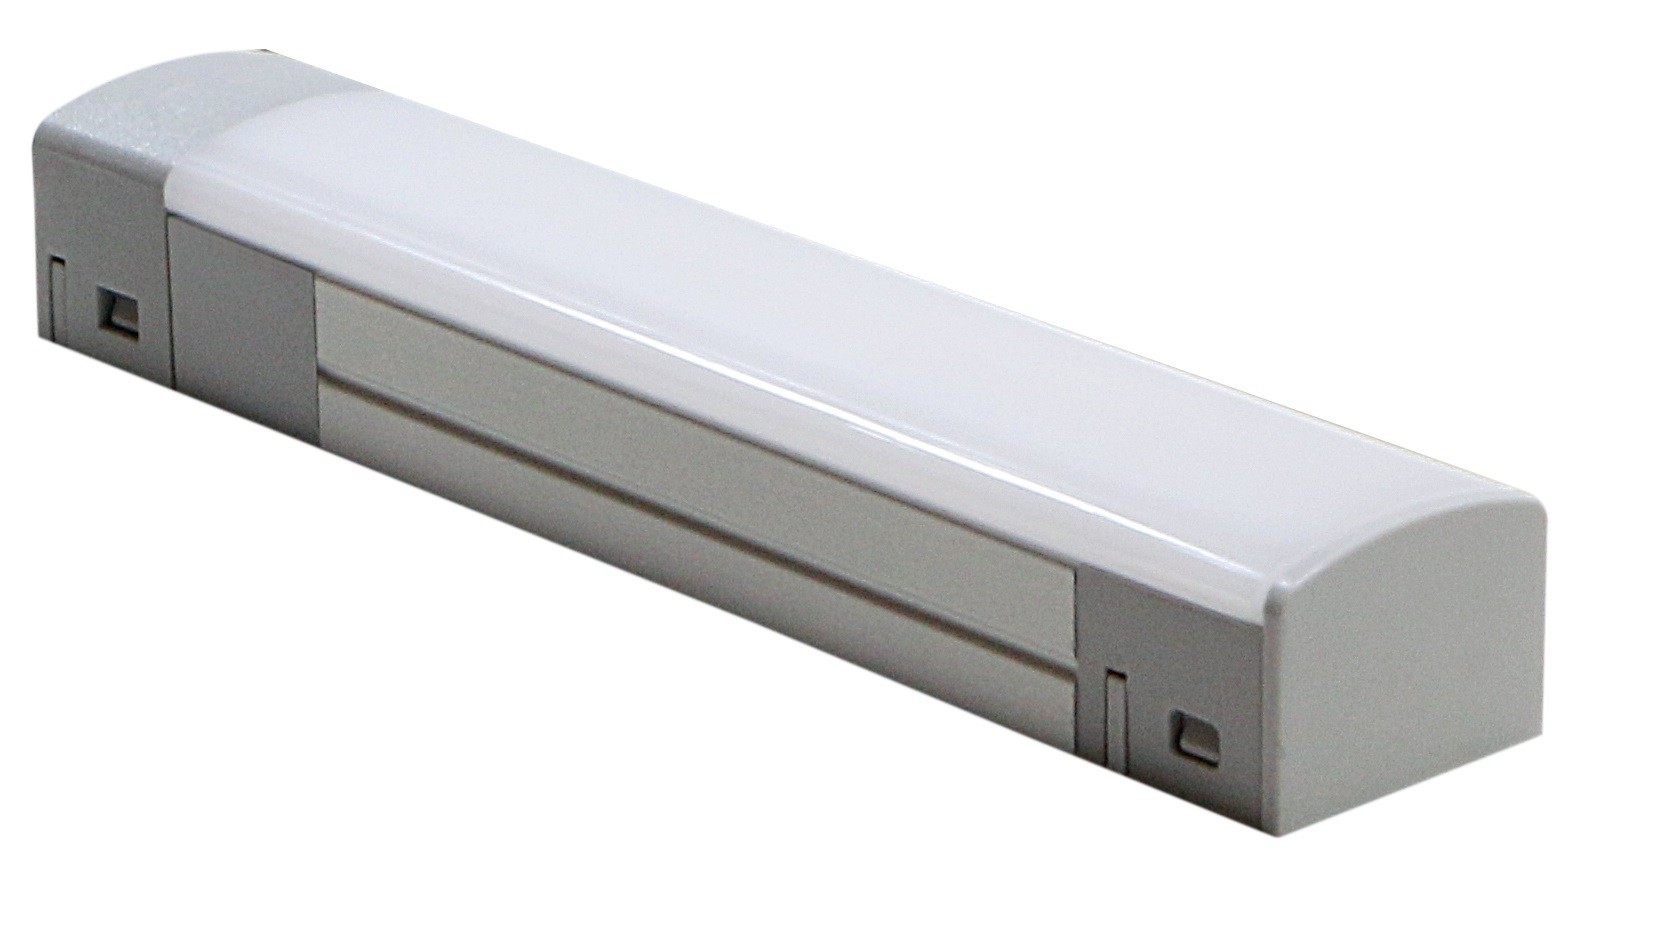 MODULO LINEARE IP20 24LED SMD2835 1W 3CCTREG DIMM L84XP16XH12 75/80LM